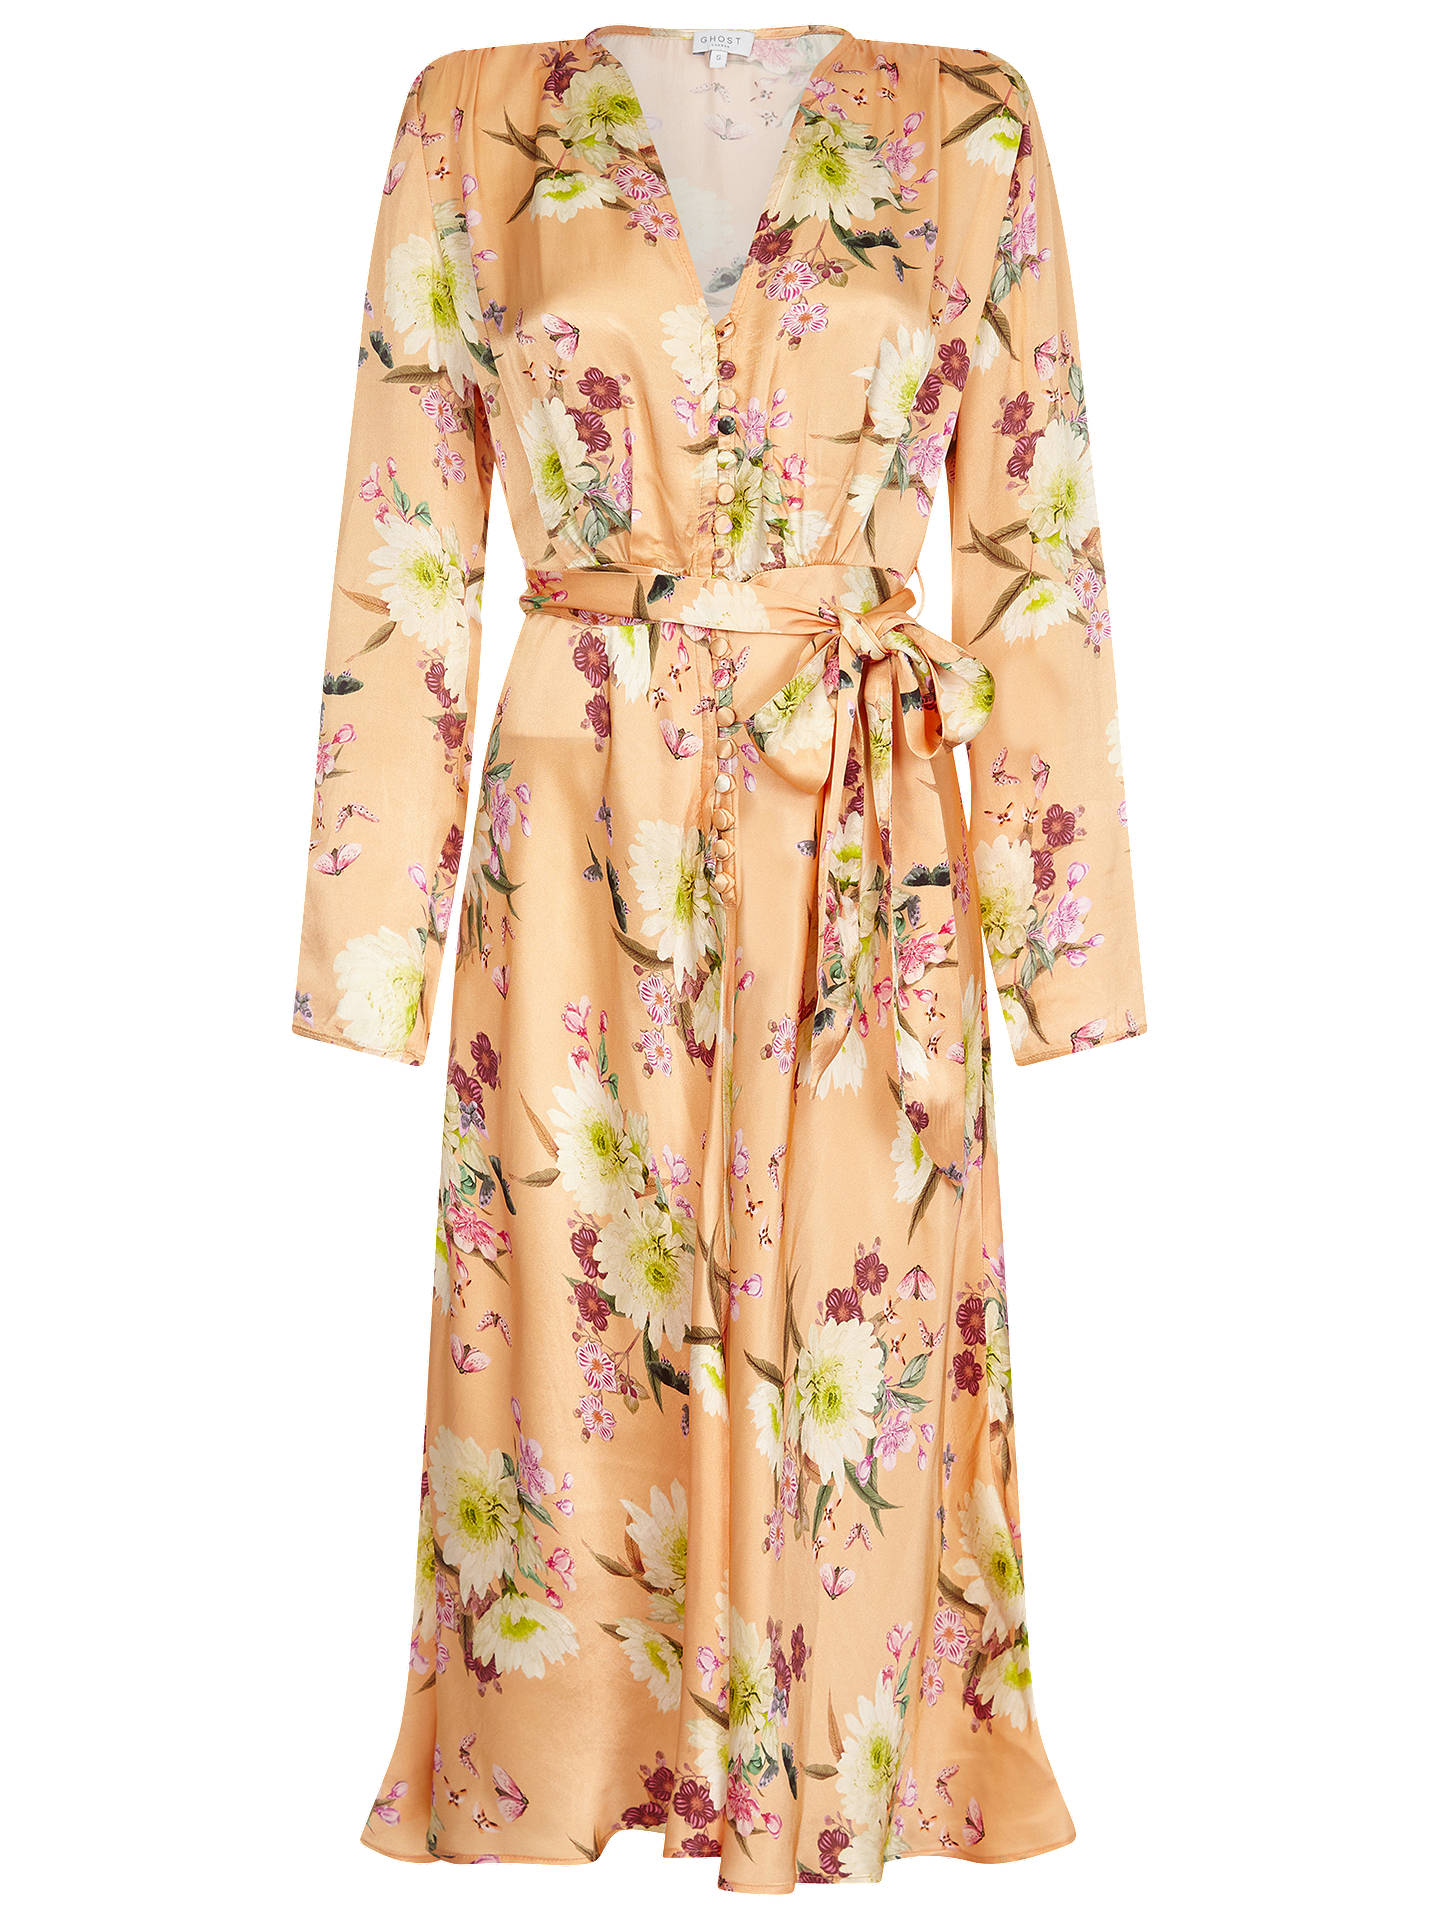 BuyGhost Meryl Dress, Summer Bloom, XXS Online at johnlewis.com